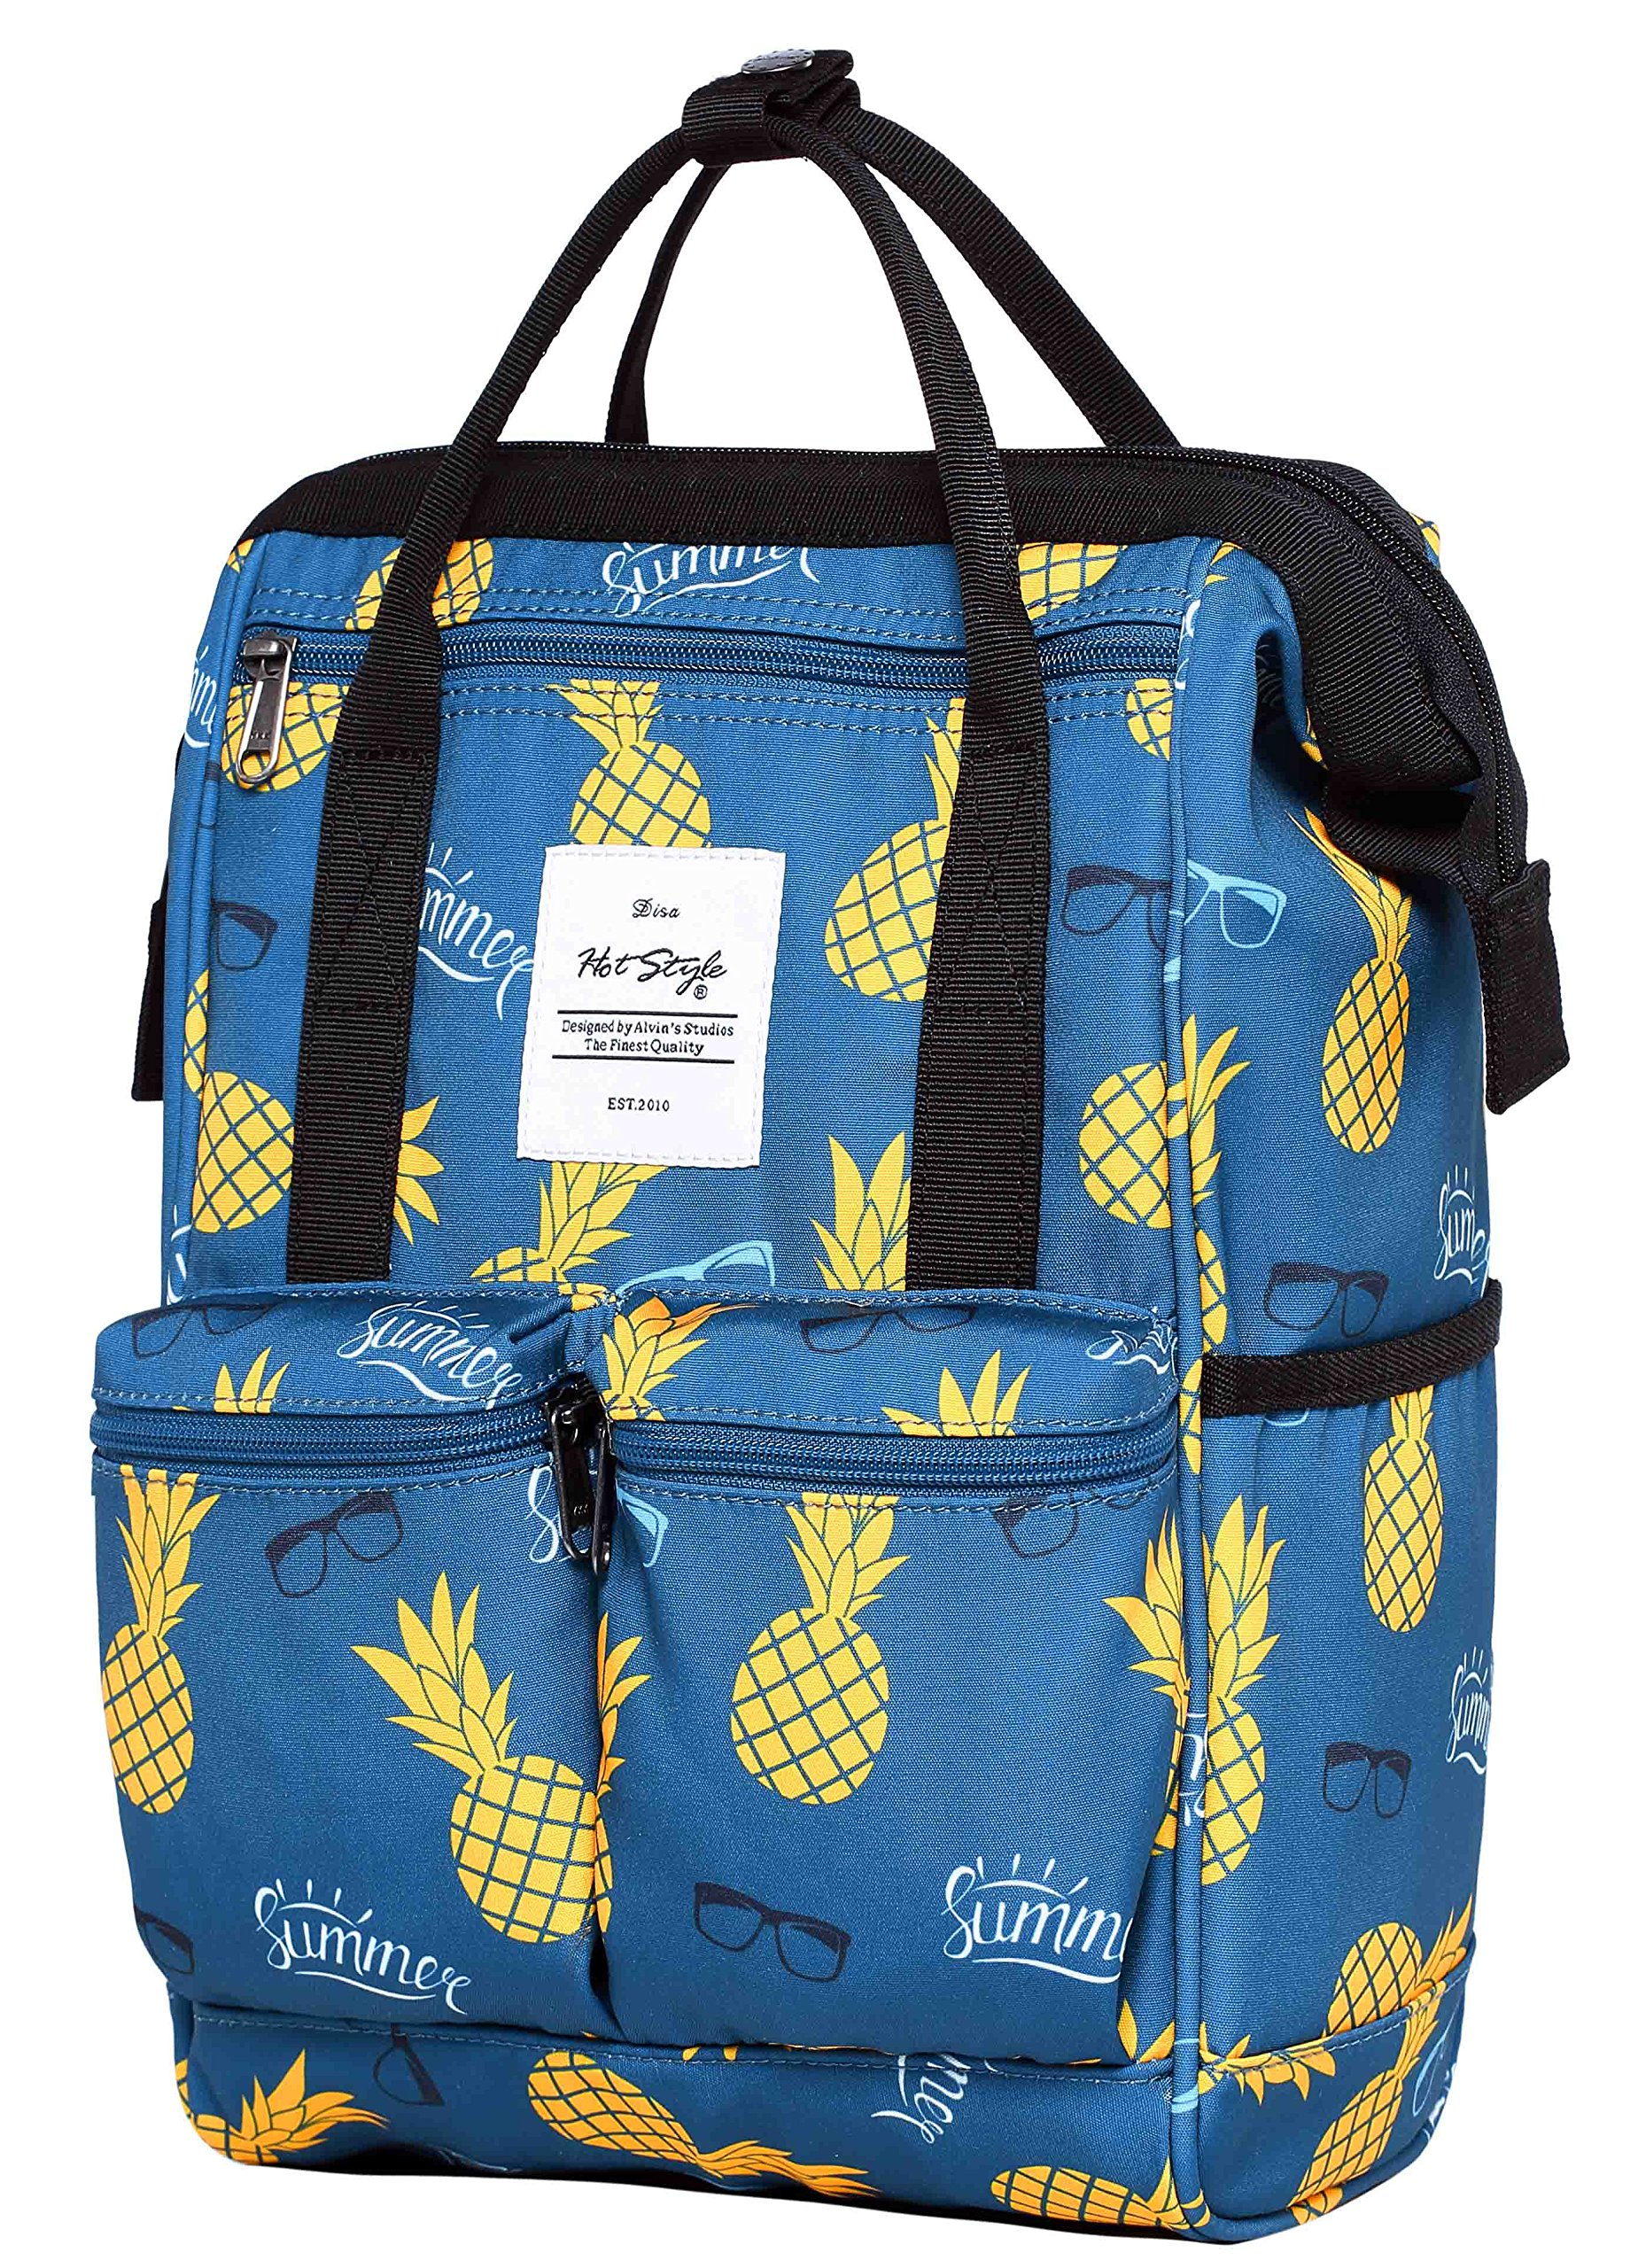 DISA 13'' Mini Small Fashion Backpack Purse | Fits 12-inch iPad Pro | Summer Pineapple